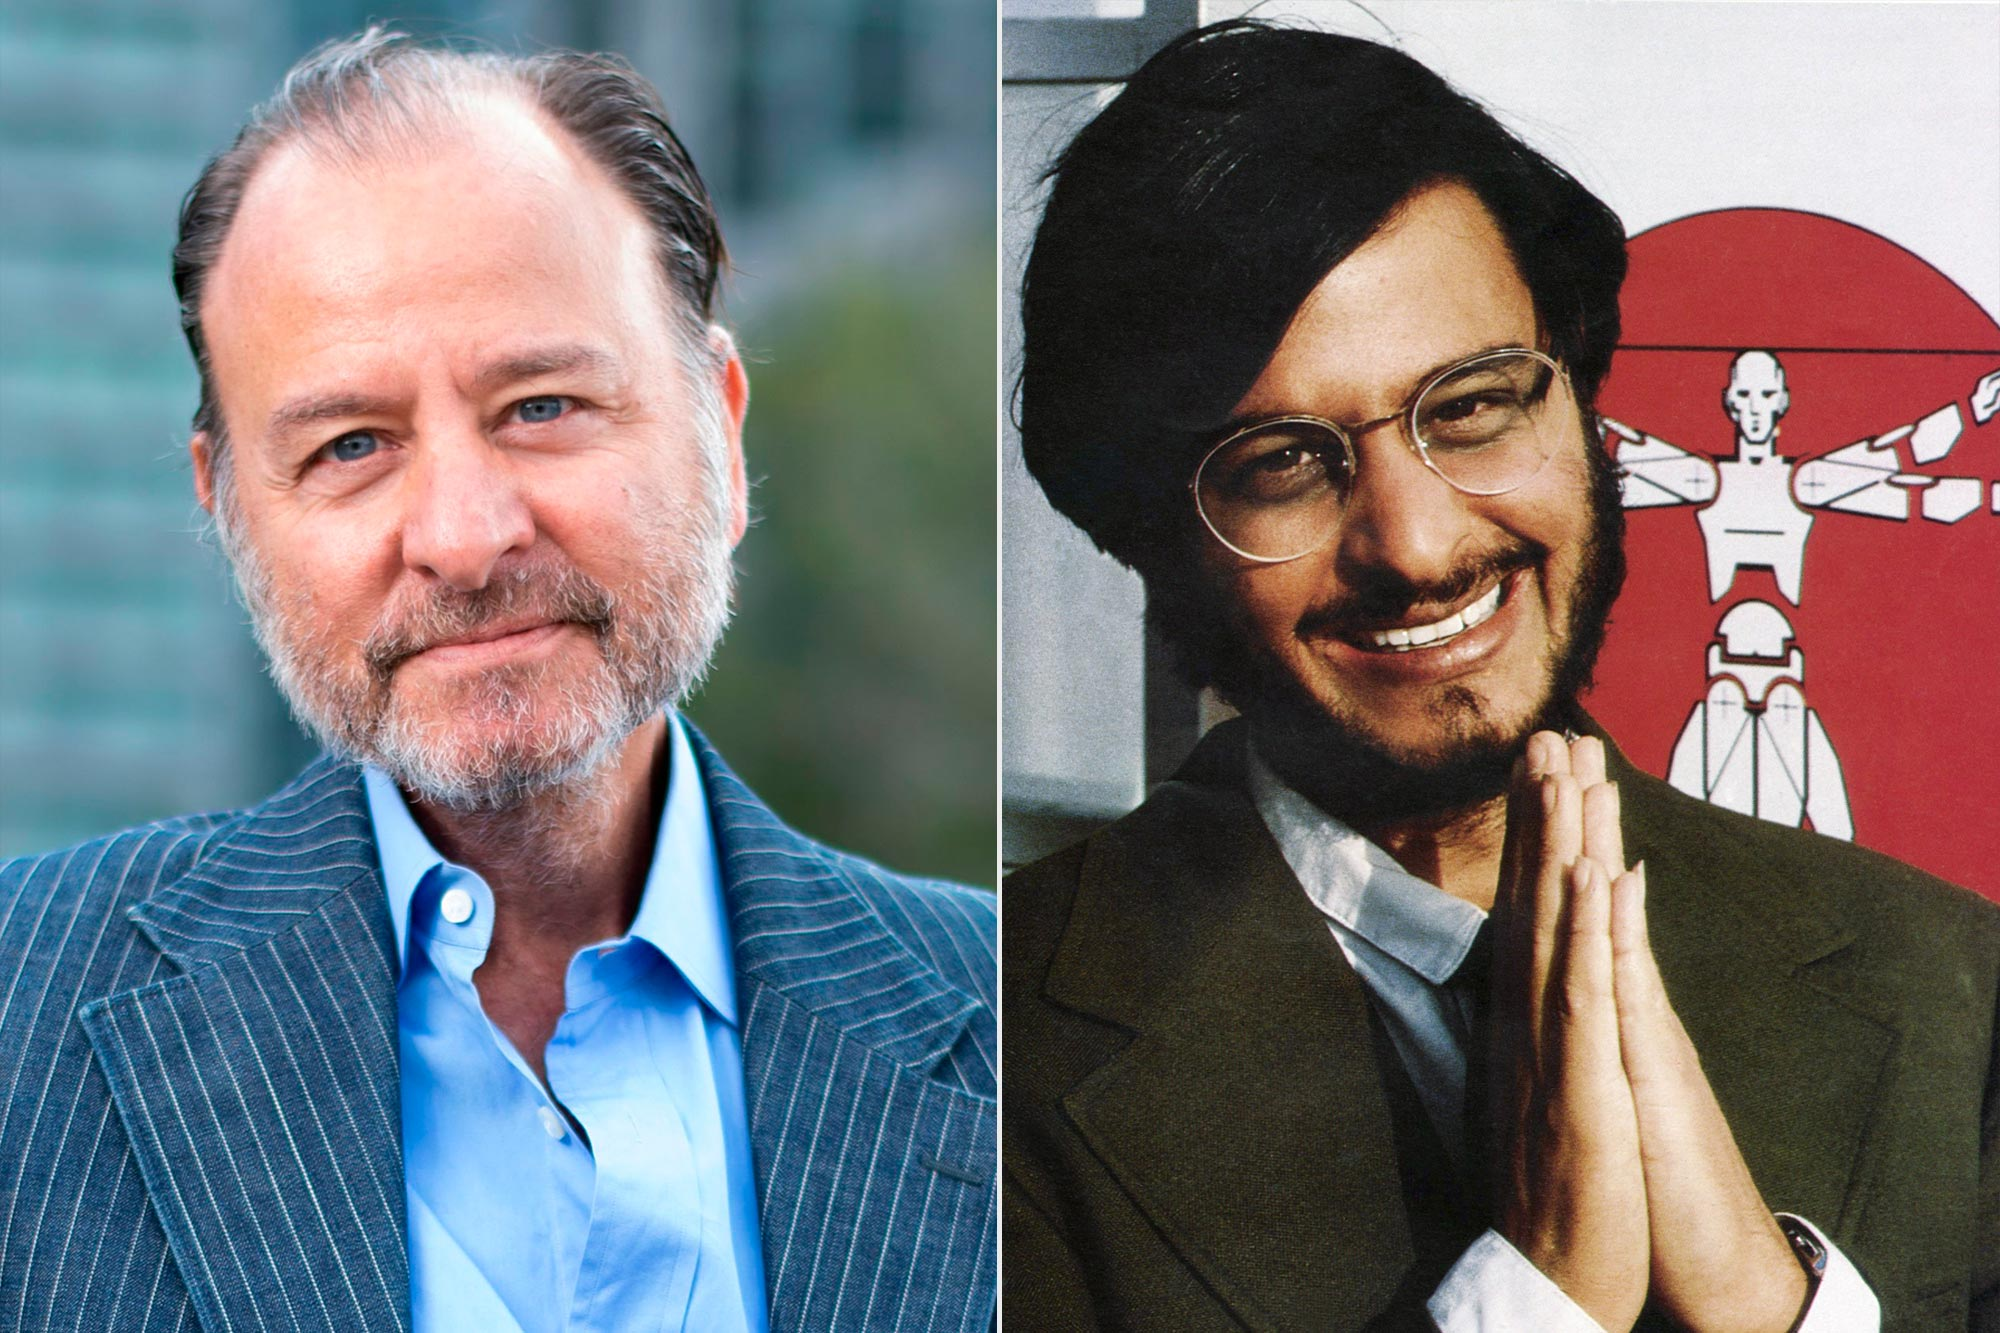 Fisher Stevens apologizes for Short Circuit role